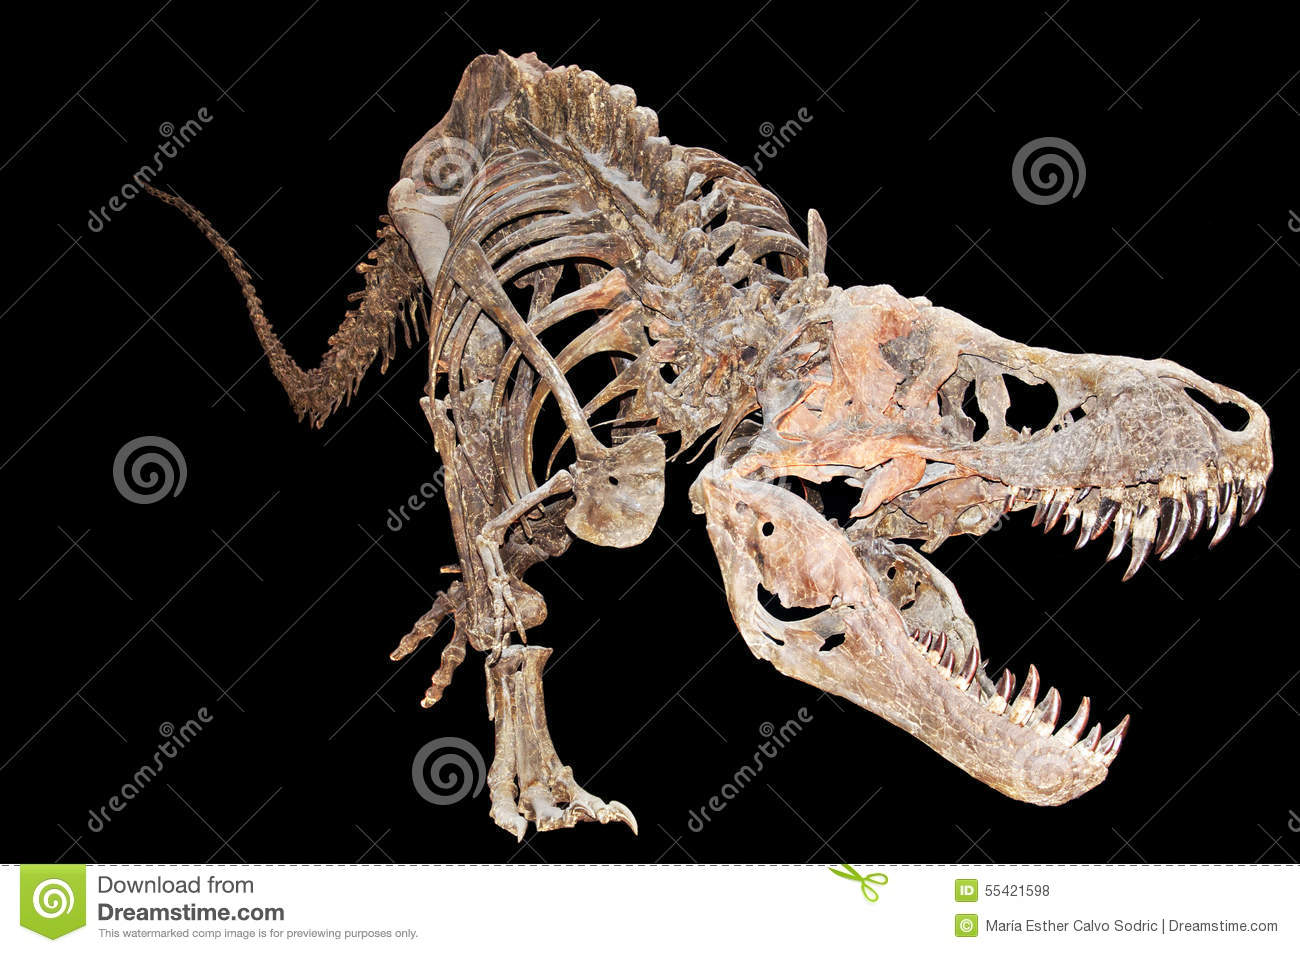 absolute dating dinosaurs The dinosaur figurines of acambaro we may have errors of up to 5-10% in absolute dating we drew dinosaurs with conical dermal spines and antonio pointed.